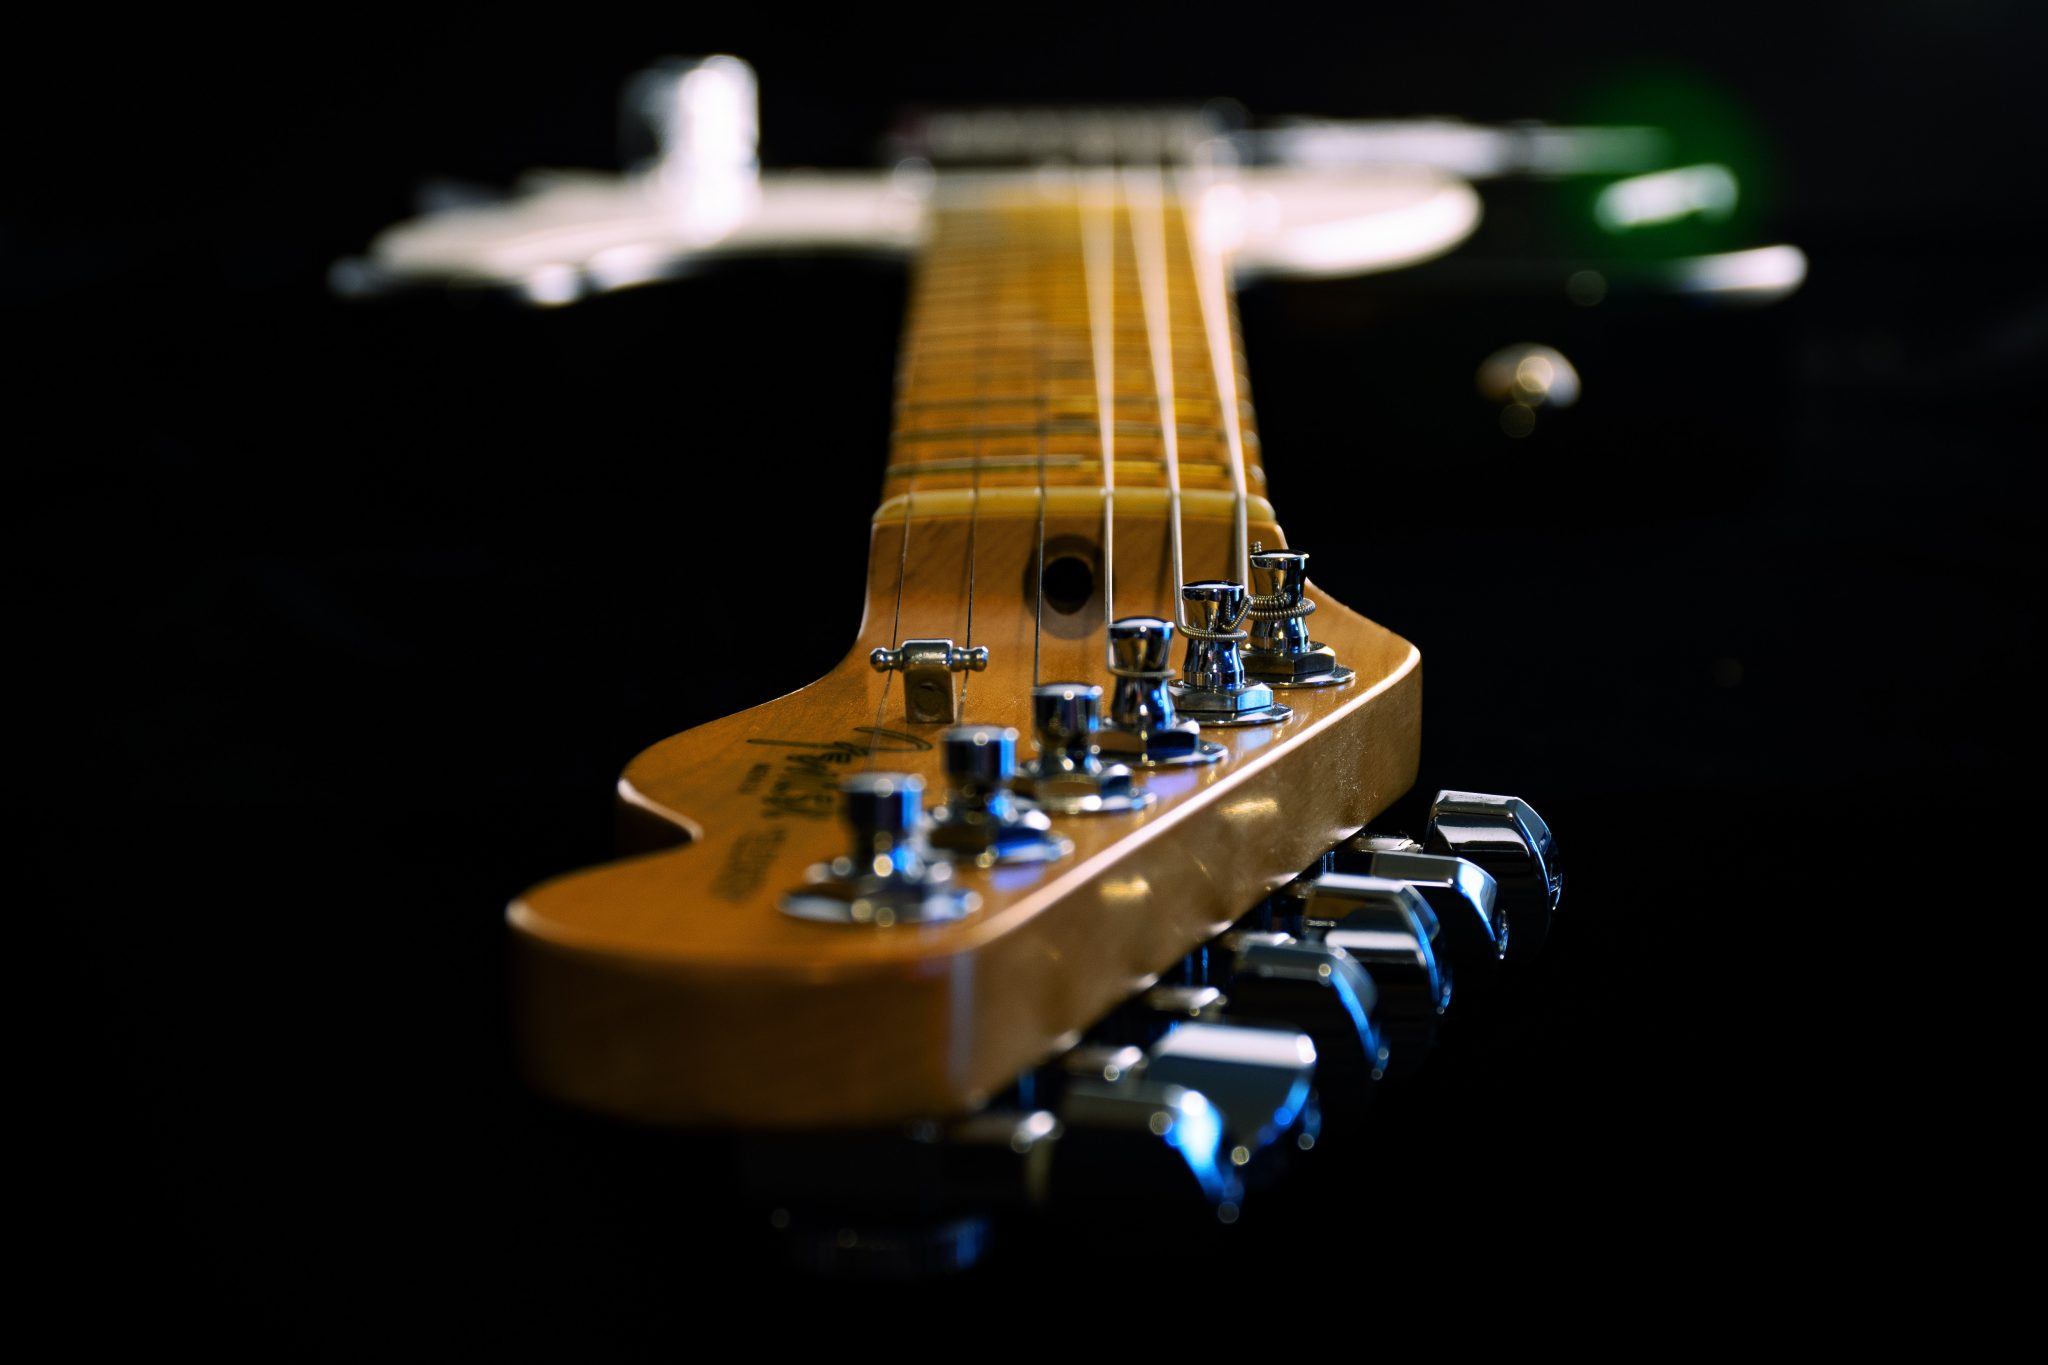 close-up of Fender teleacaster headstock